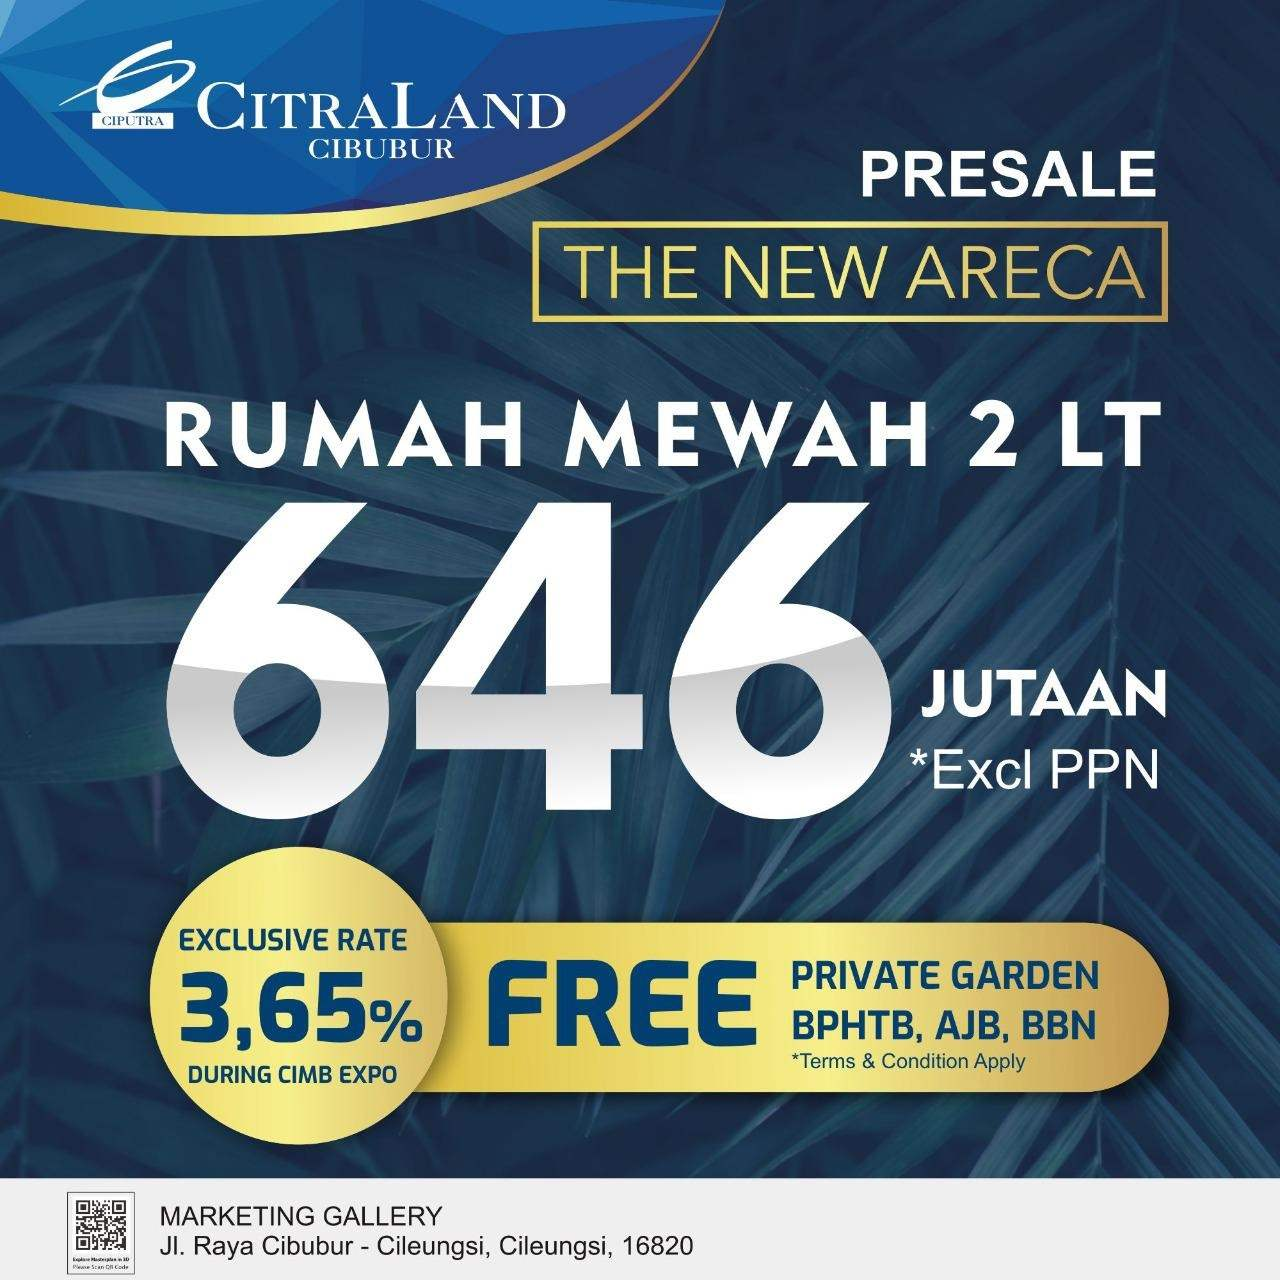 The New Areca Presale CitraLand Cibubur